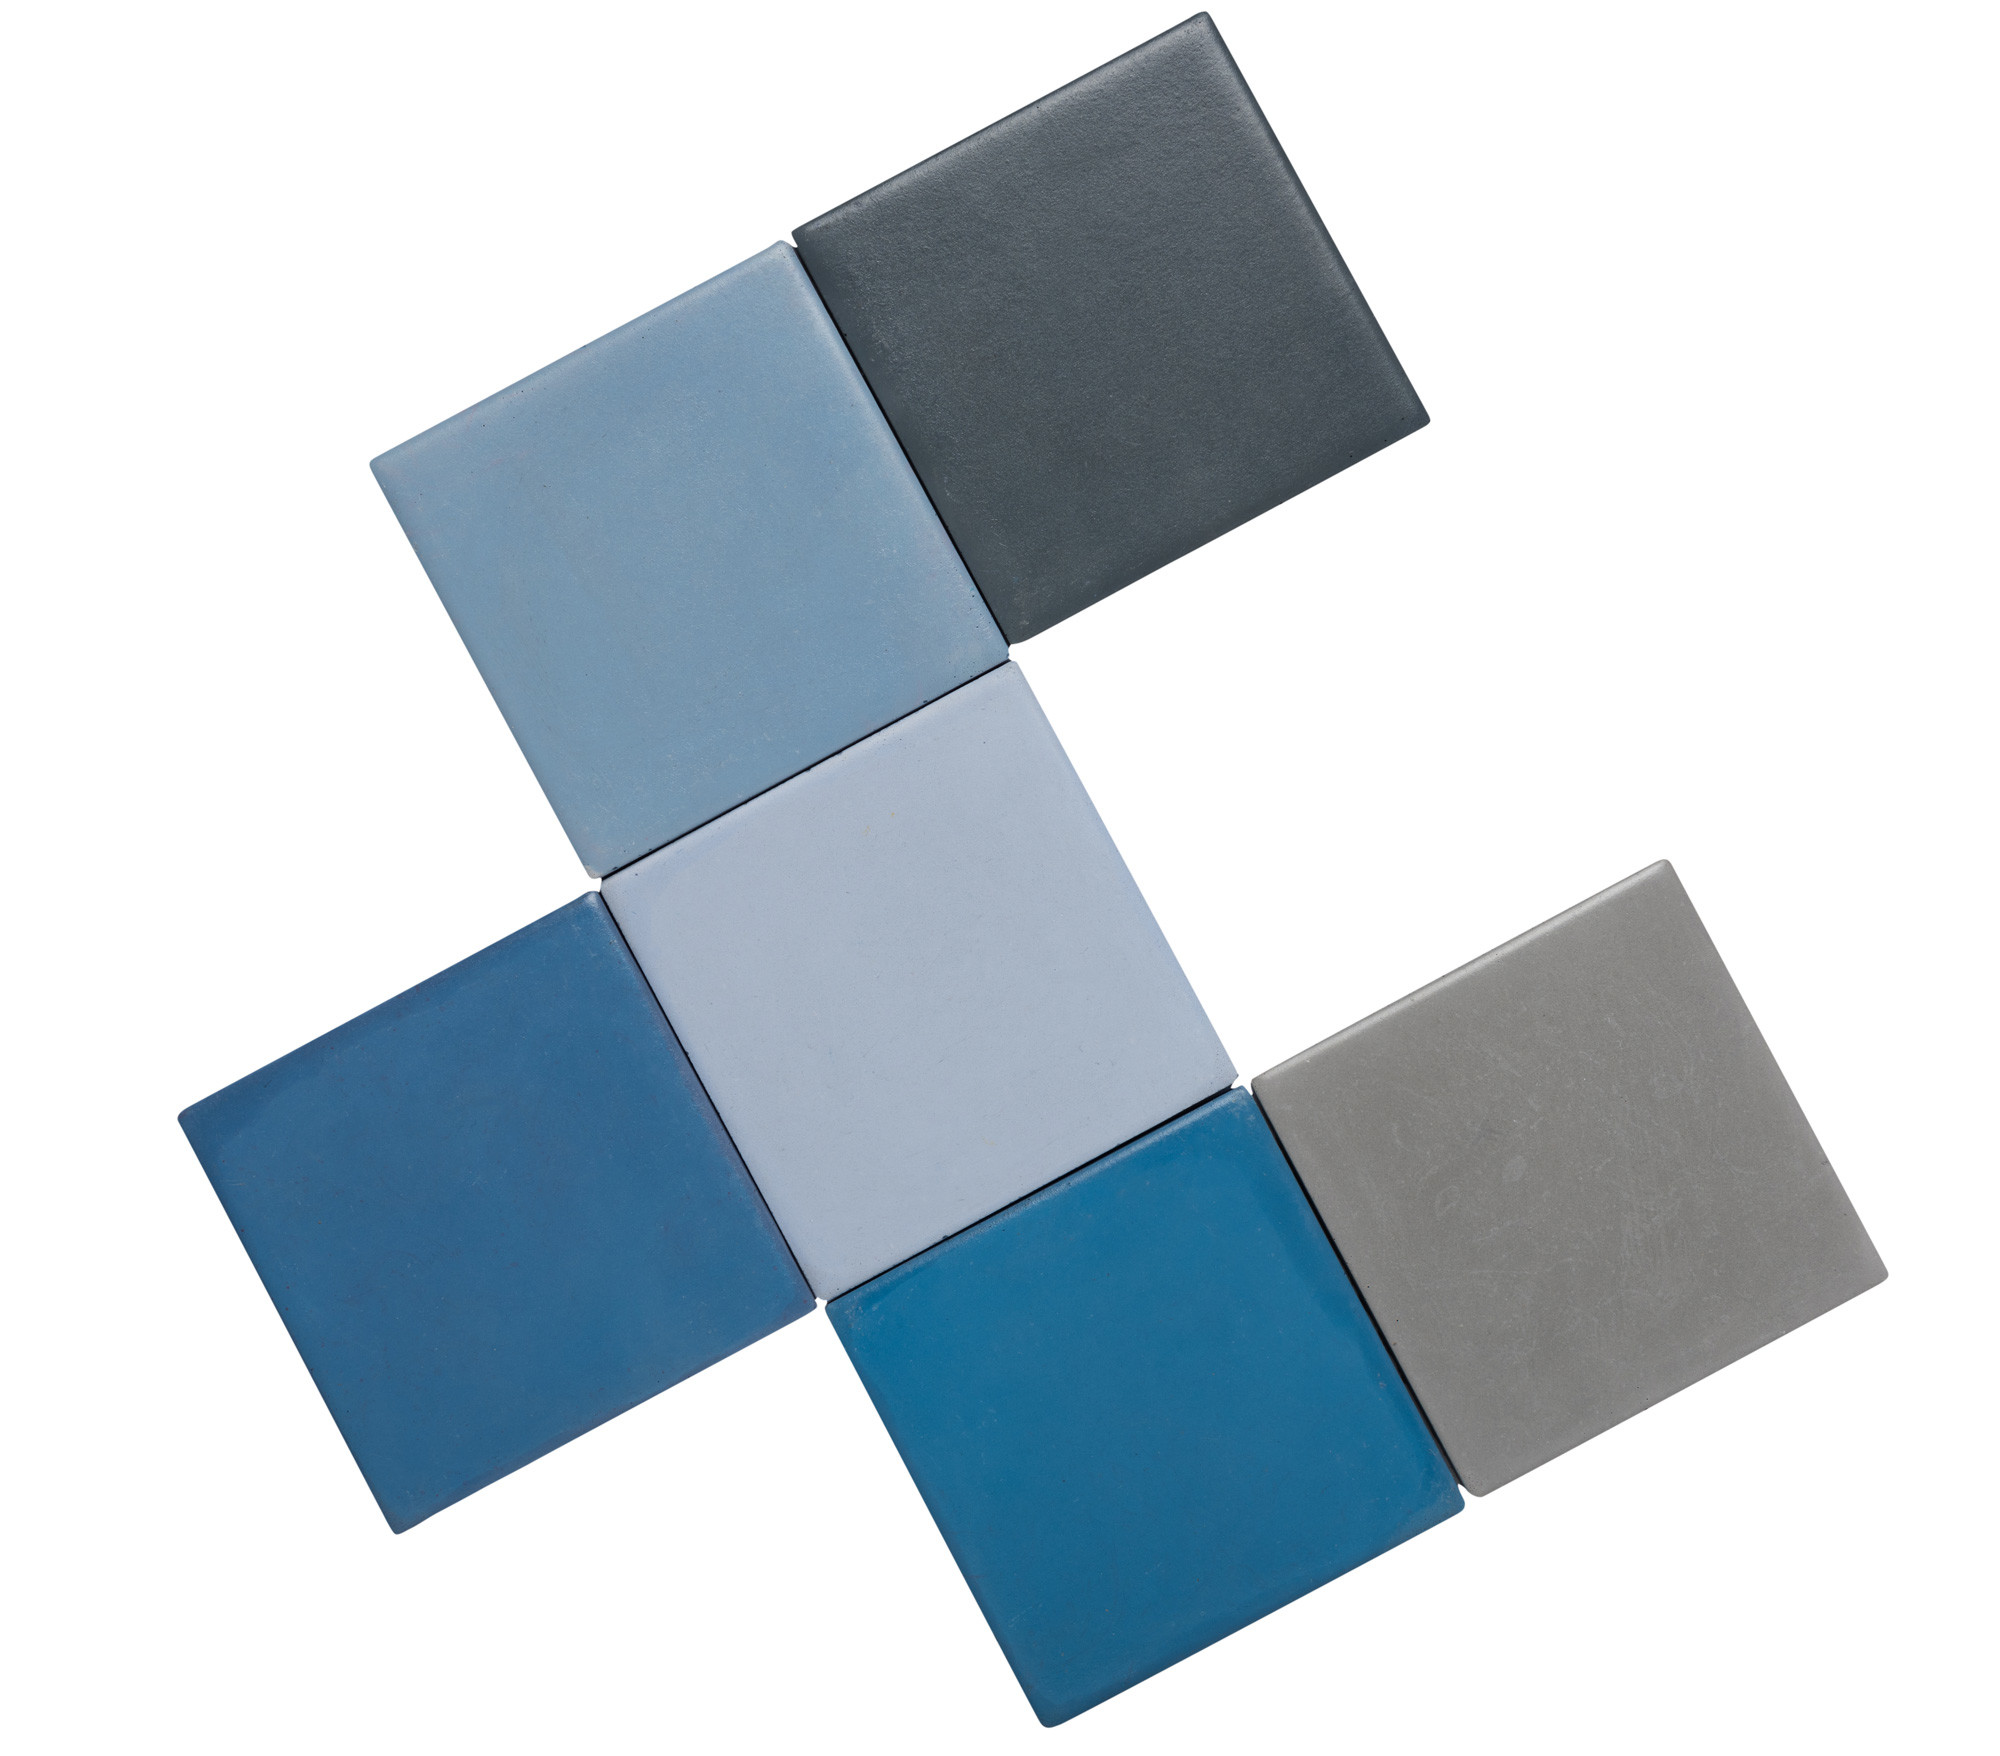 carrelage bleu gris interesting carrelage gris mur bleu u chaios parquet gris bleu parquet gris. Black Bedroom Furniture Sets. Home Design Ideas